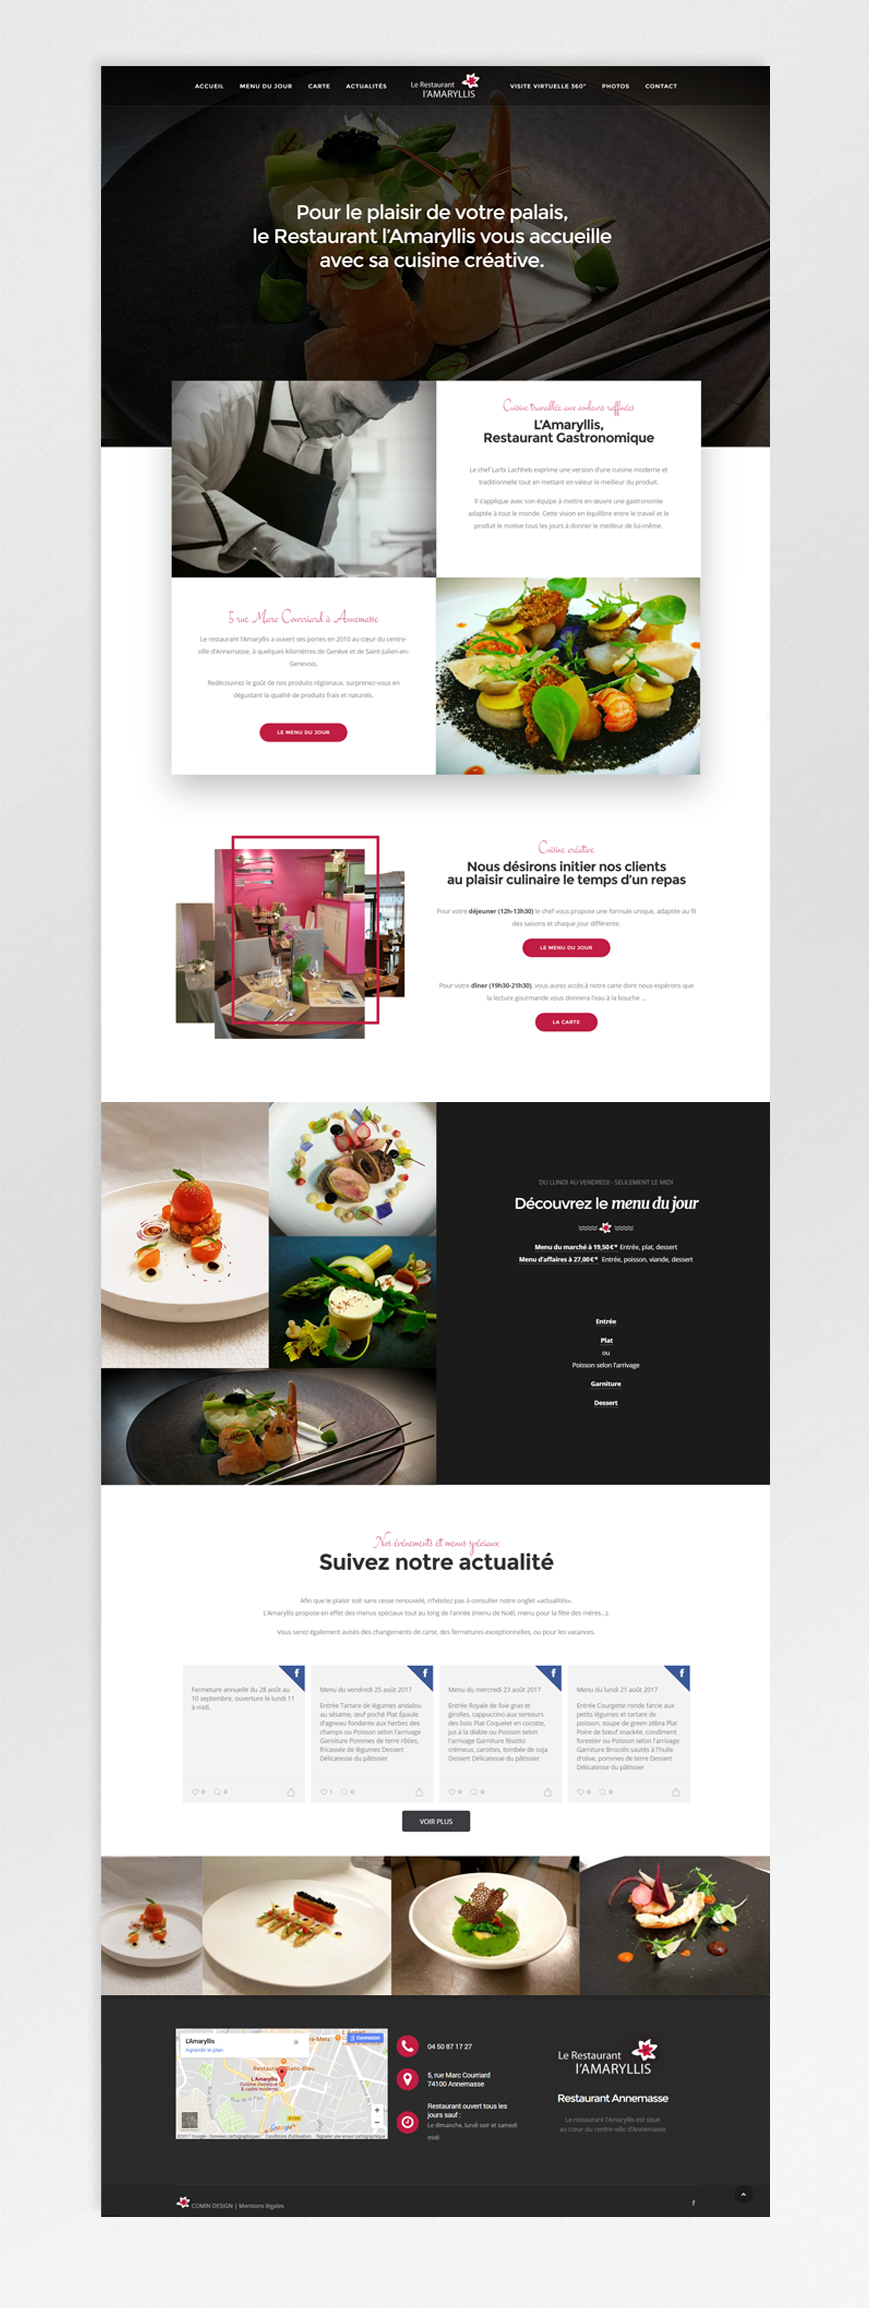 Restaurant L'Amaryllis – website homepage